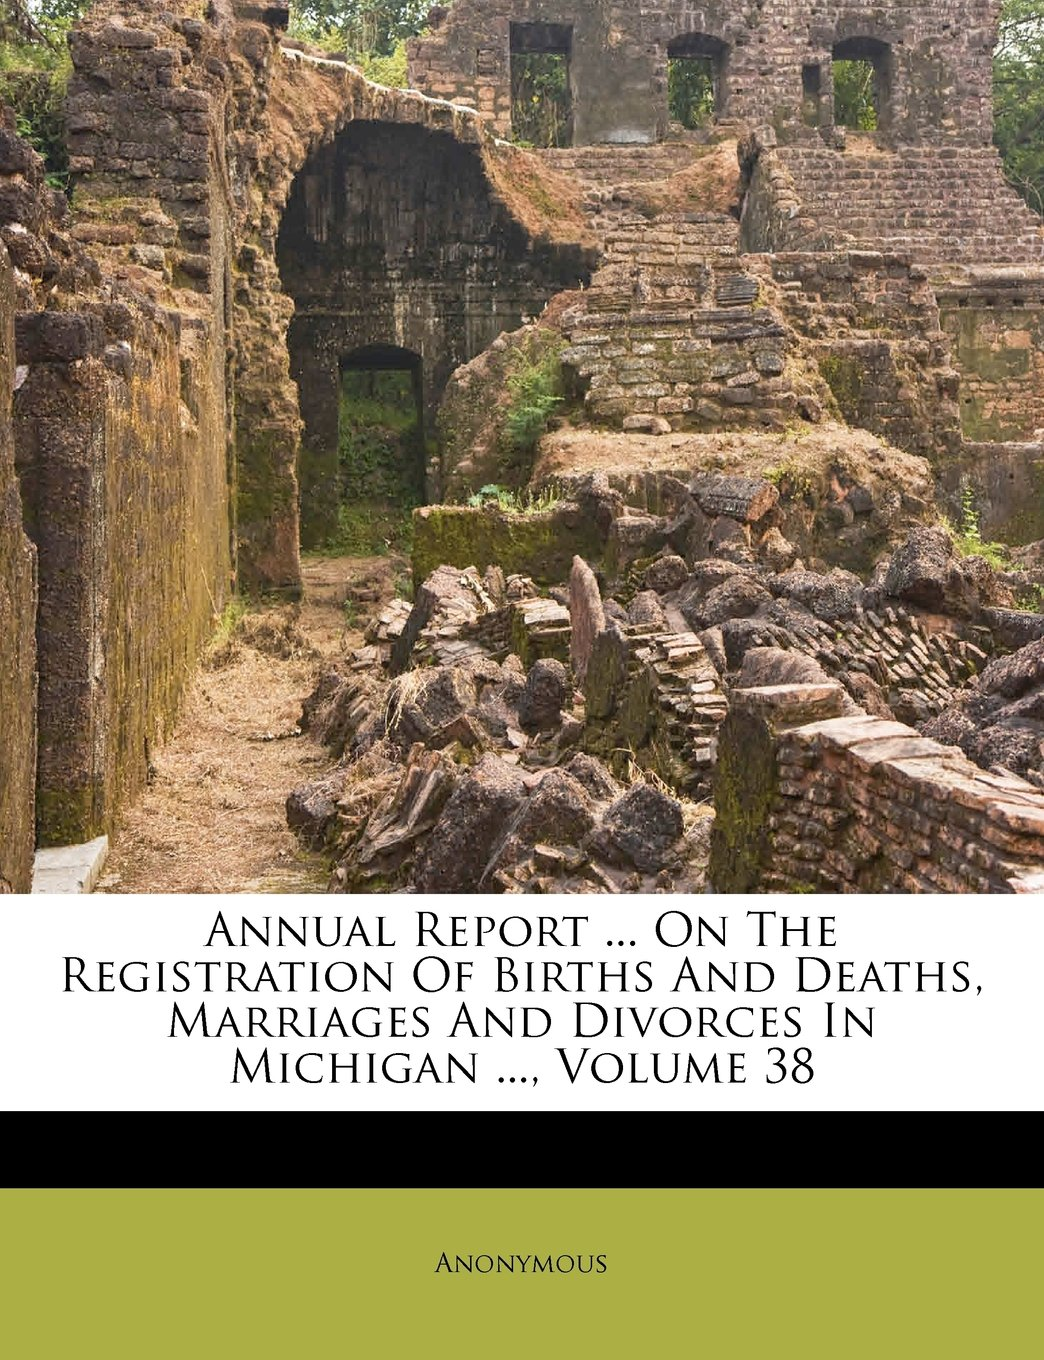 Download Annual Report ... On The Registration Of Births And Deaths, Marriages And Divorces In Michigan ..., Volume 38 ebook